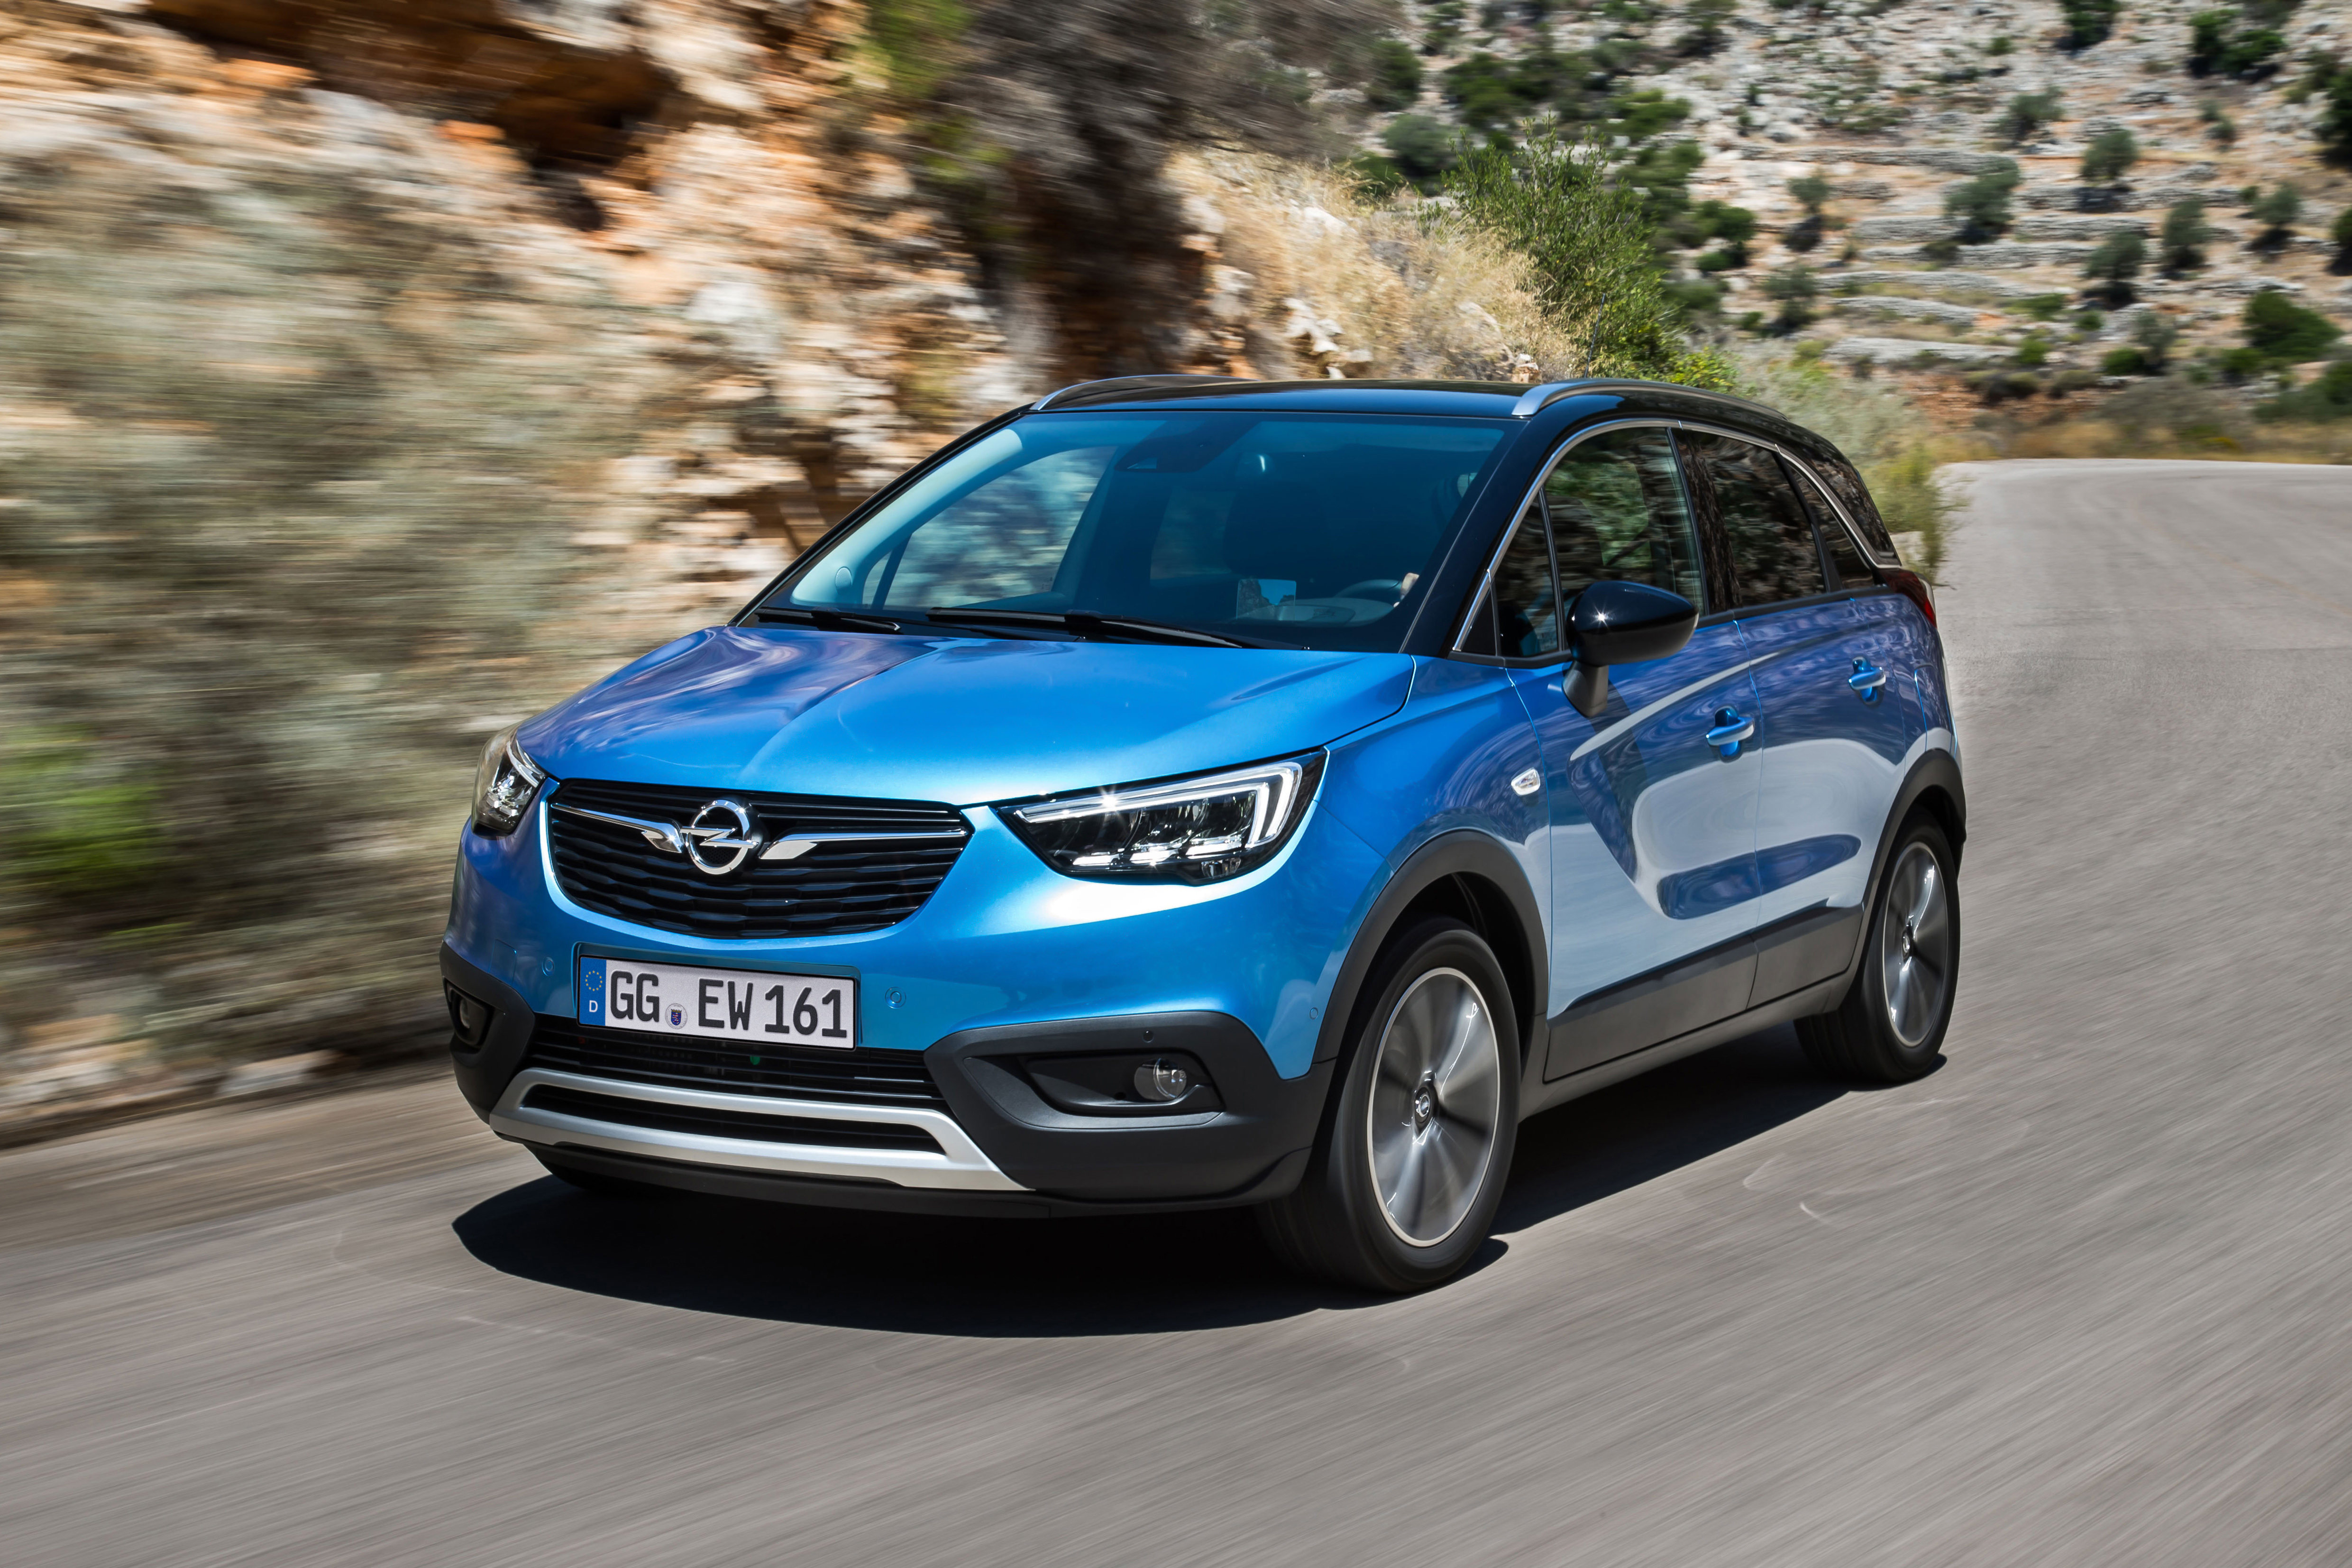 Bestseller in the making: More than 100,000 customers have already ordered the Opel Crossland X since the start of sales about one year ago.